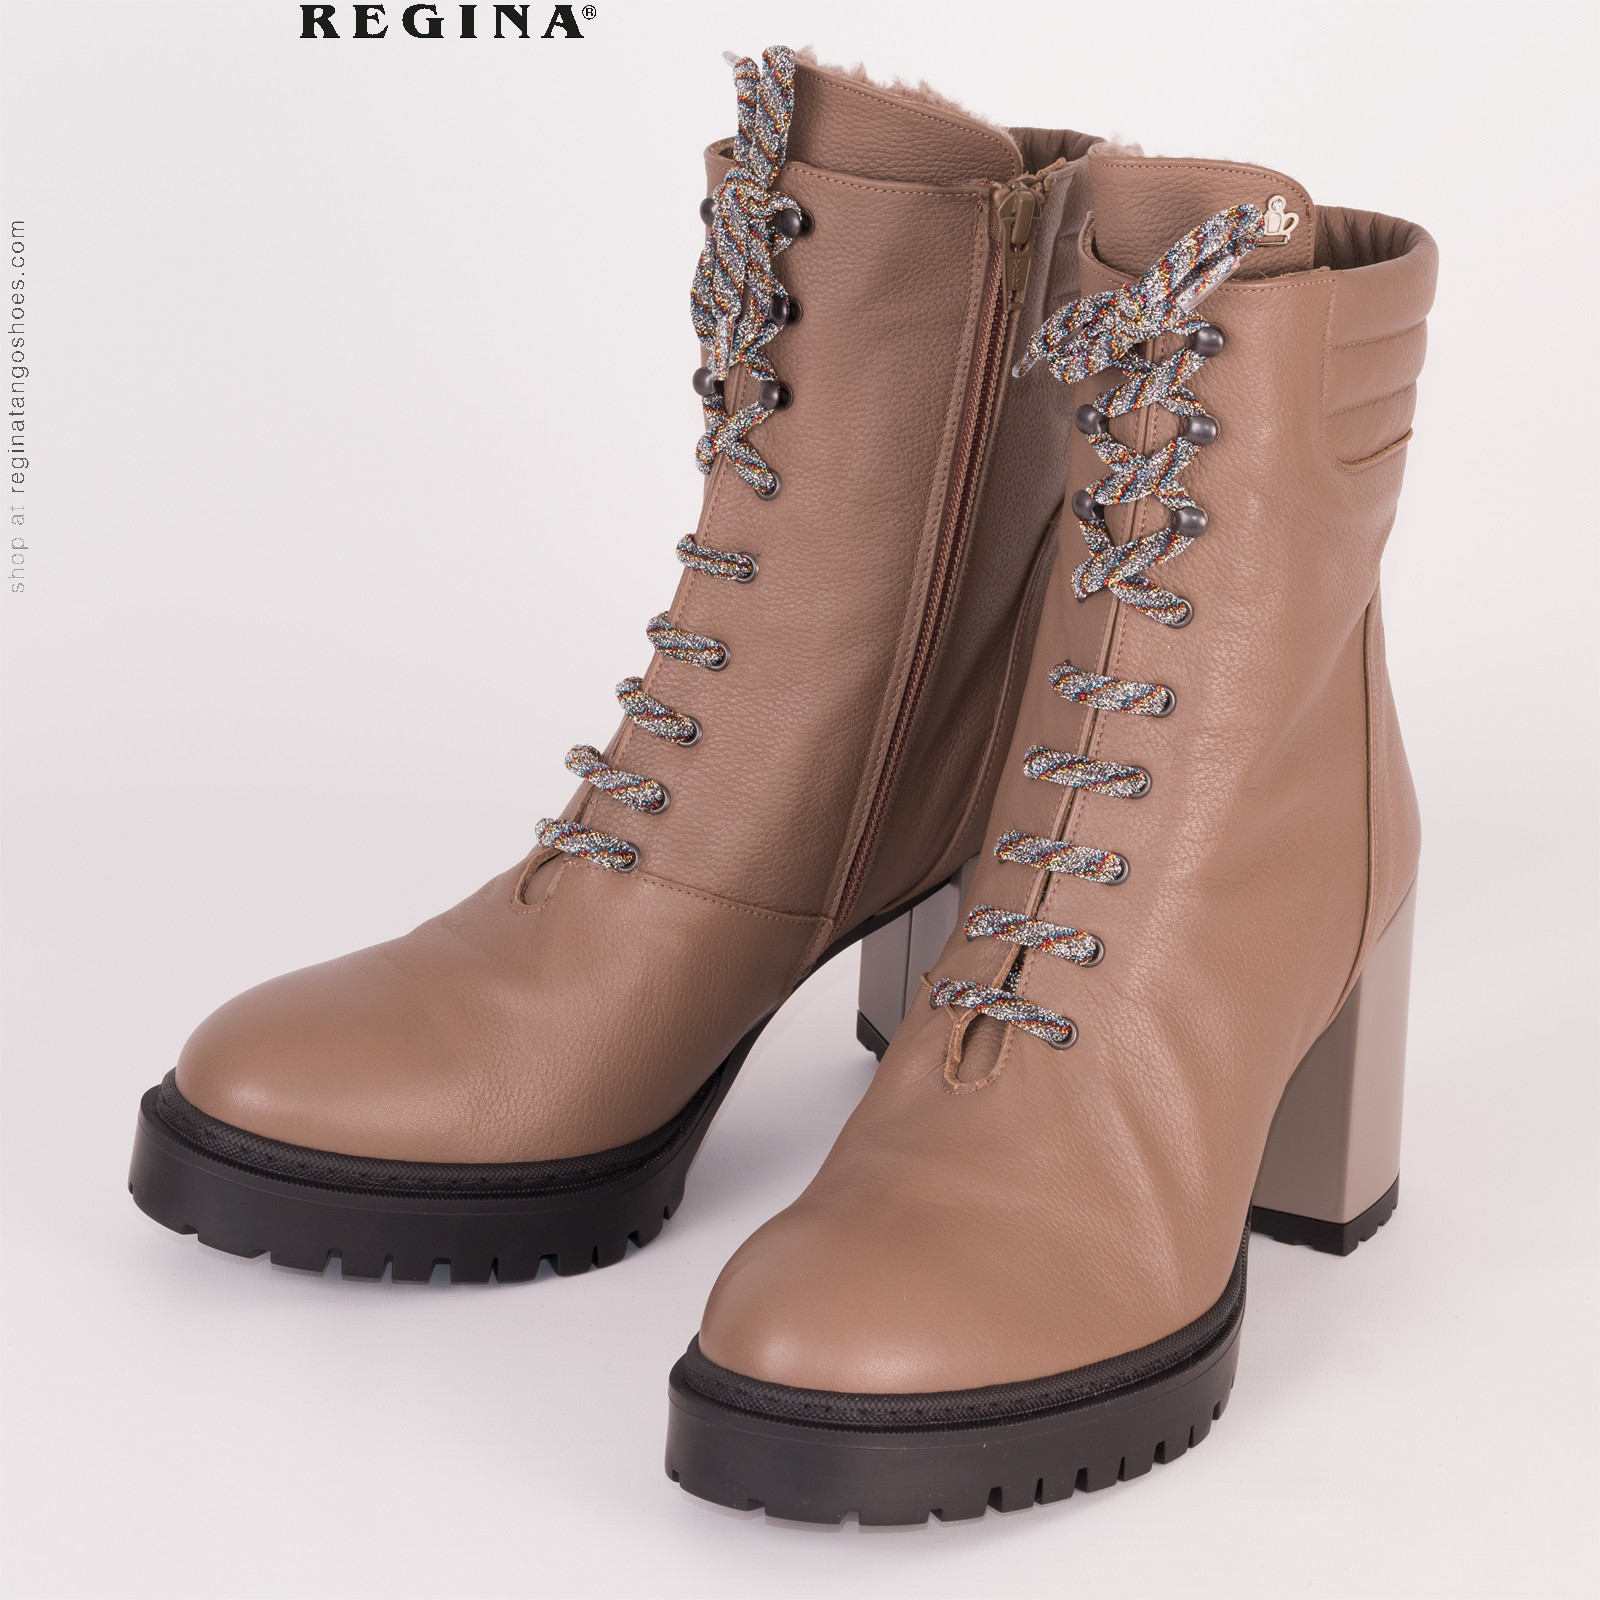 Boots poseidone front